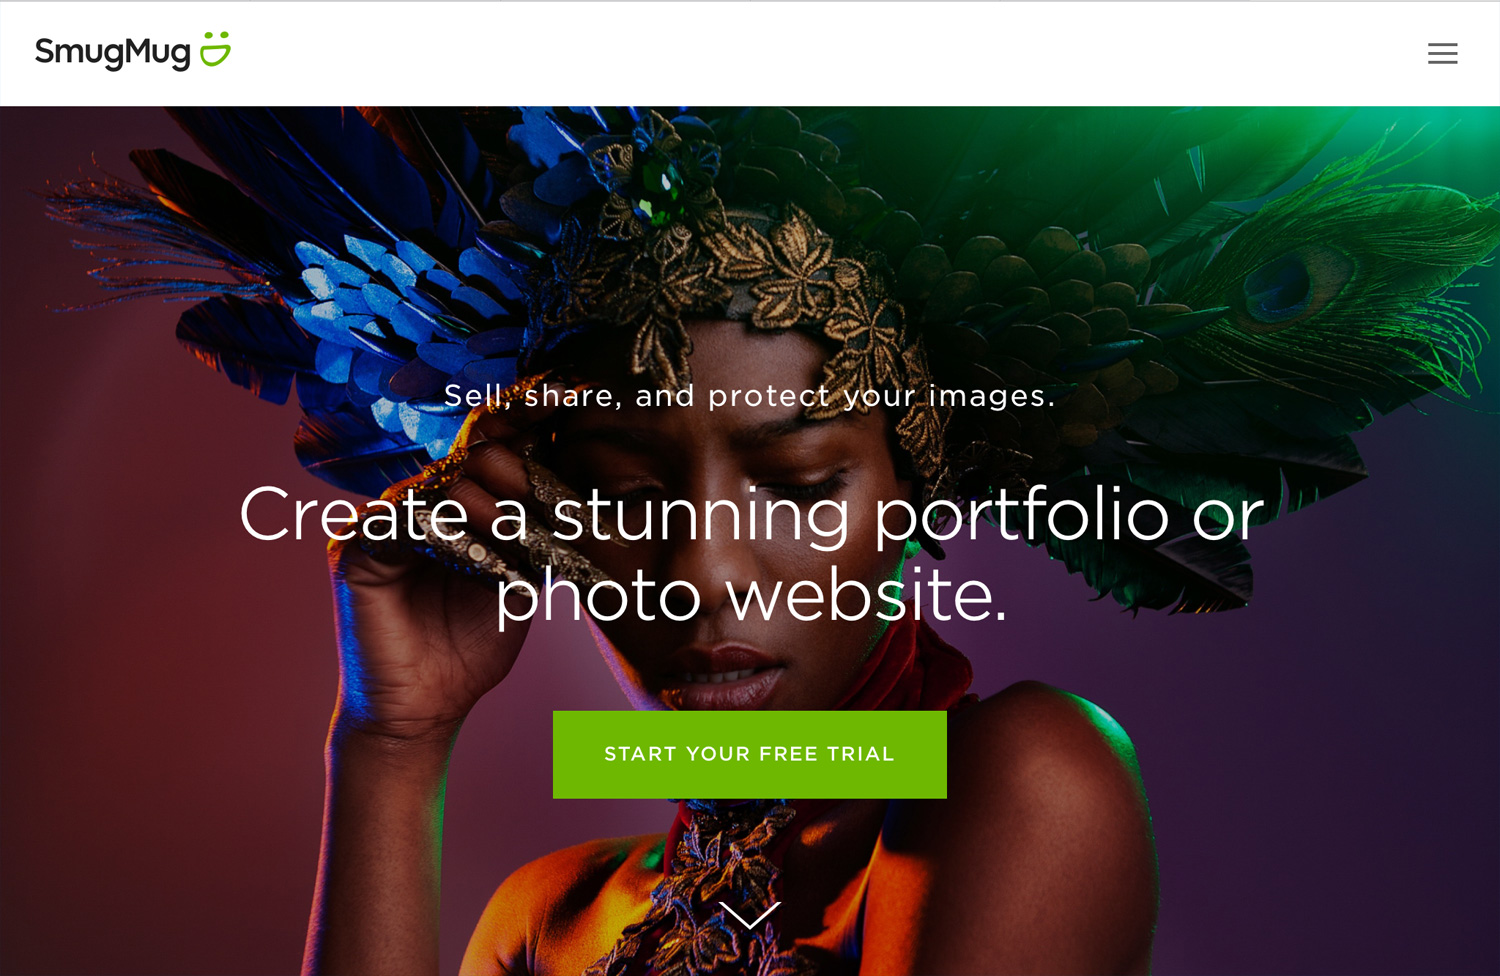 SmugMug - How to Find the Right Website Platform that Works For You